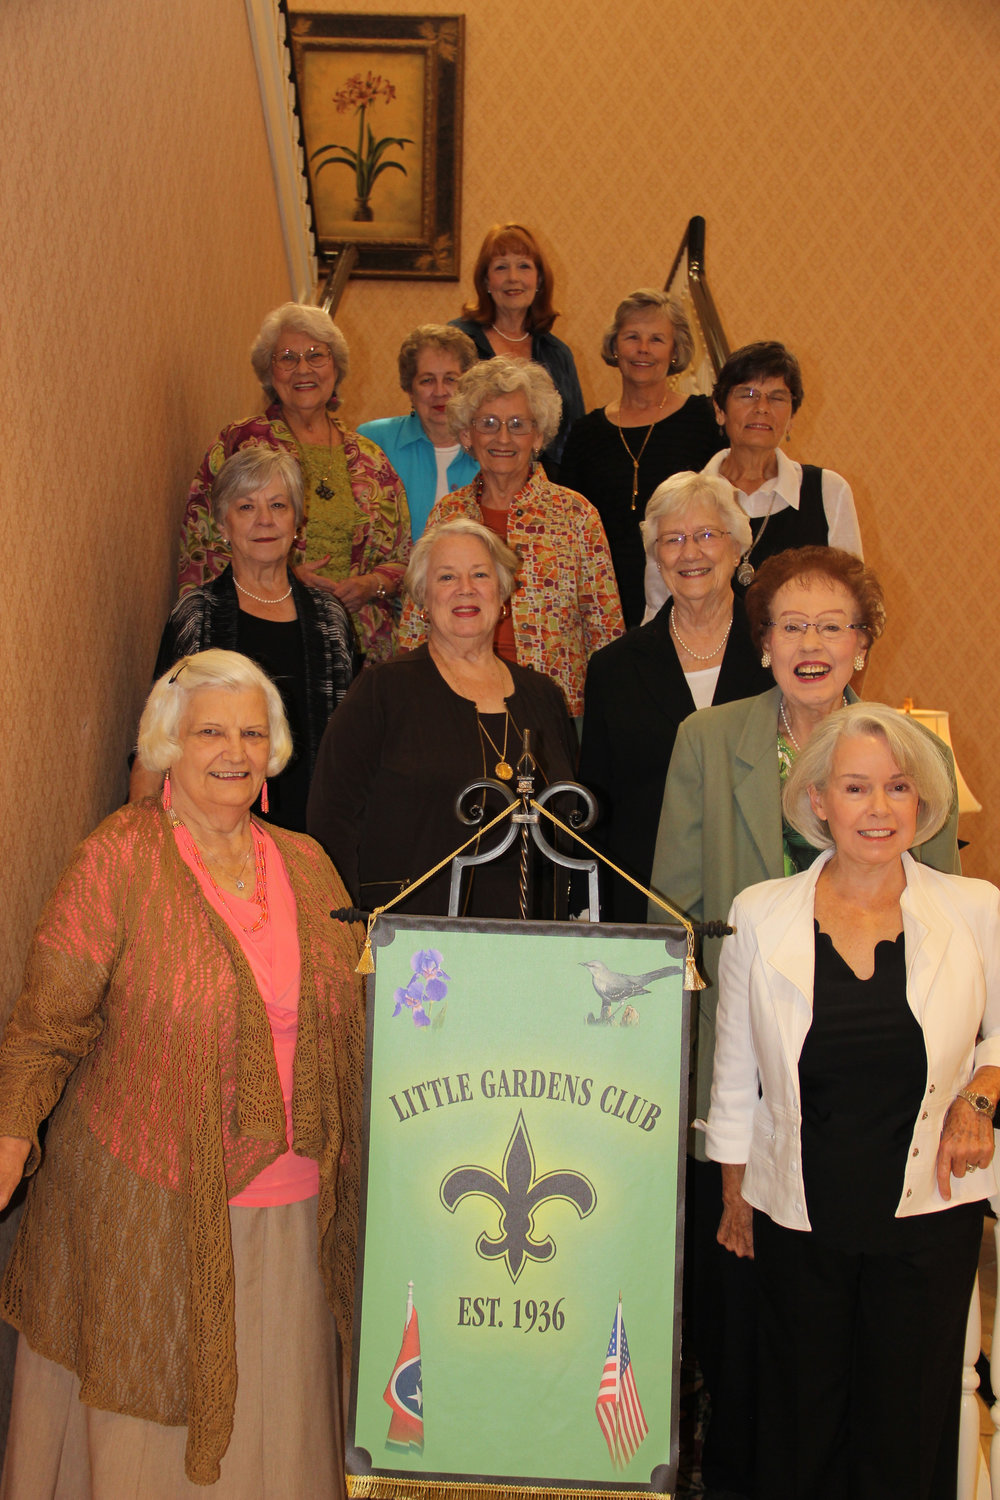 The members of the Little Gardens Club include Nancy Adkins, Alicia Austin, Kitty Bush, Ann Coleman, Maxine Henderson, Terri Kelly, Anne Love, Helen Luster, Joyce Moorehead, Joan Rose, Susie Tallent, Anita Tucker and Carolyn Wilson. Members not present were Joan Christian, Claudia Durham, Caroline Scarlett and Jessie Smith.